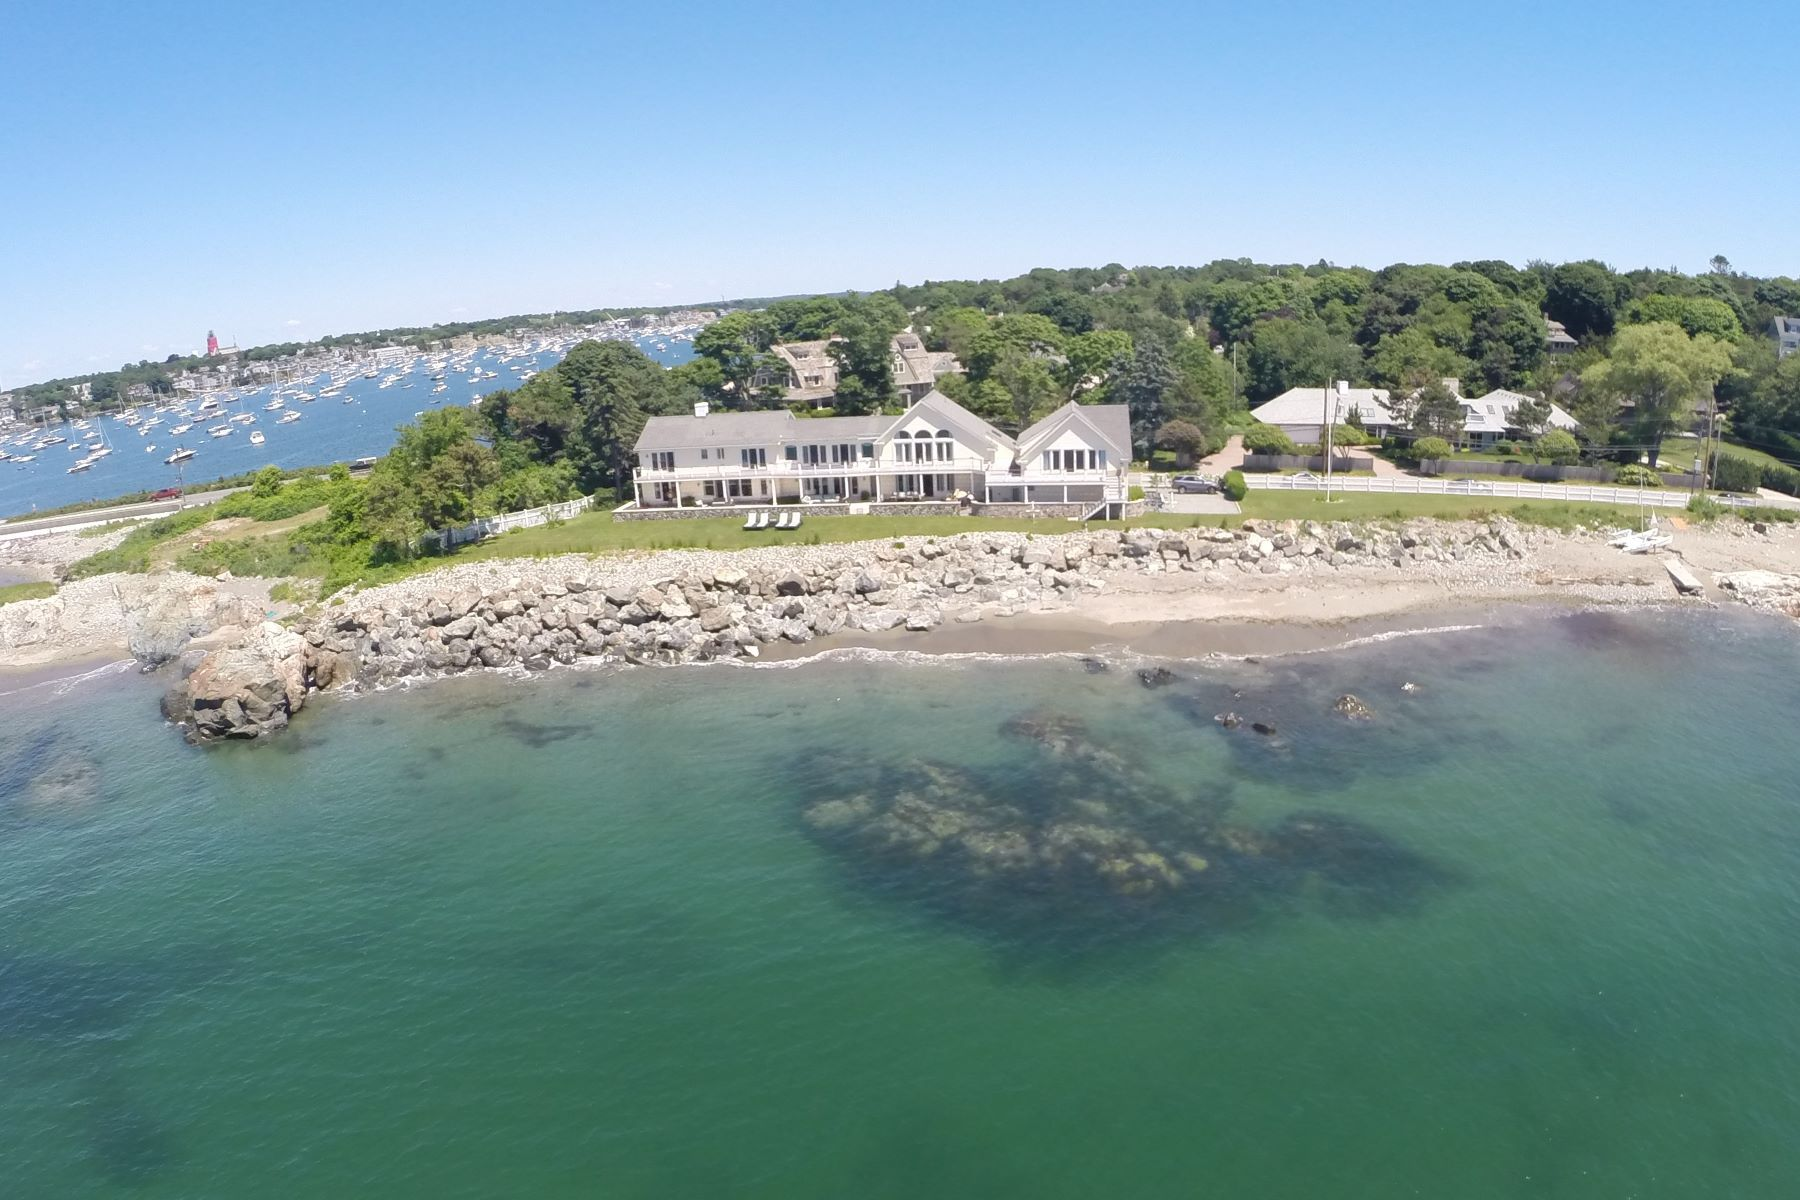 Casa Unifamiliar por un Venta en Spectacular Beach Front Contemporary Home 201 Ocean Avenue Marblehead, Massachusetts 01945 Estados Unidos